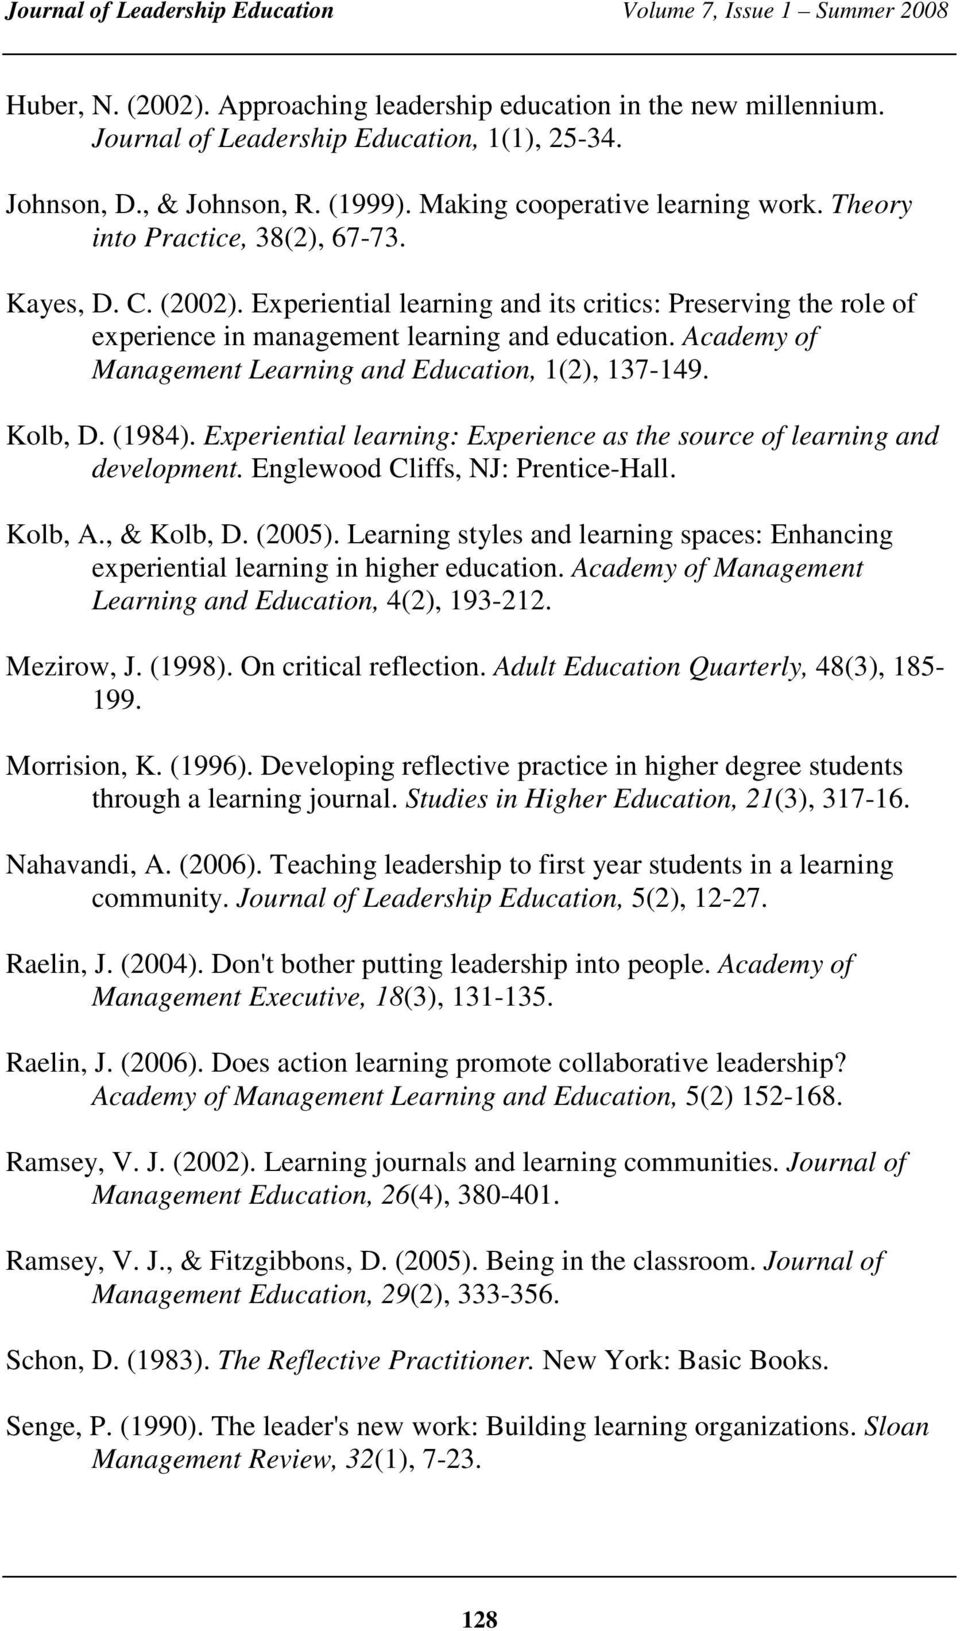 Academy of Management Learning and Education, 1(2), 137-149. Kolb, D. (1984). Experiential learning: Experience as the source of learning and development. Englewood Cliffs, NJ: Prentice-Hall. Kolb, A.